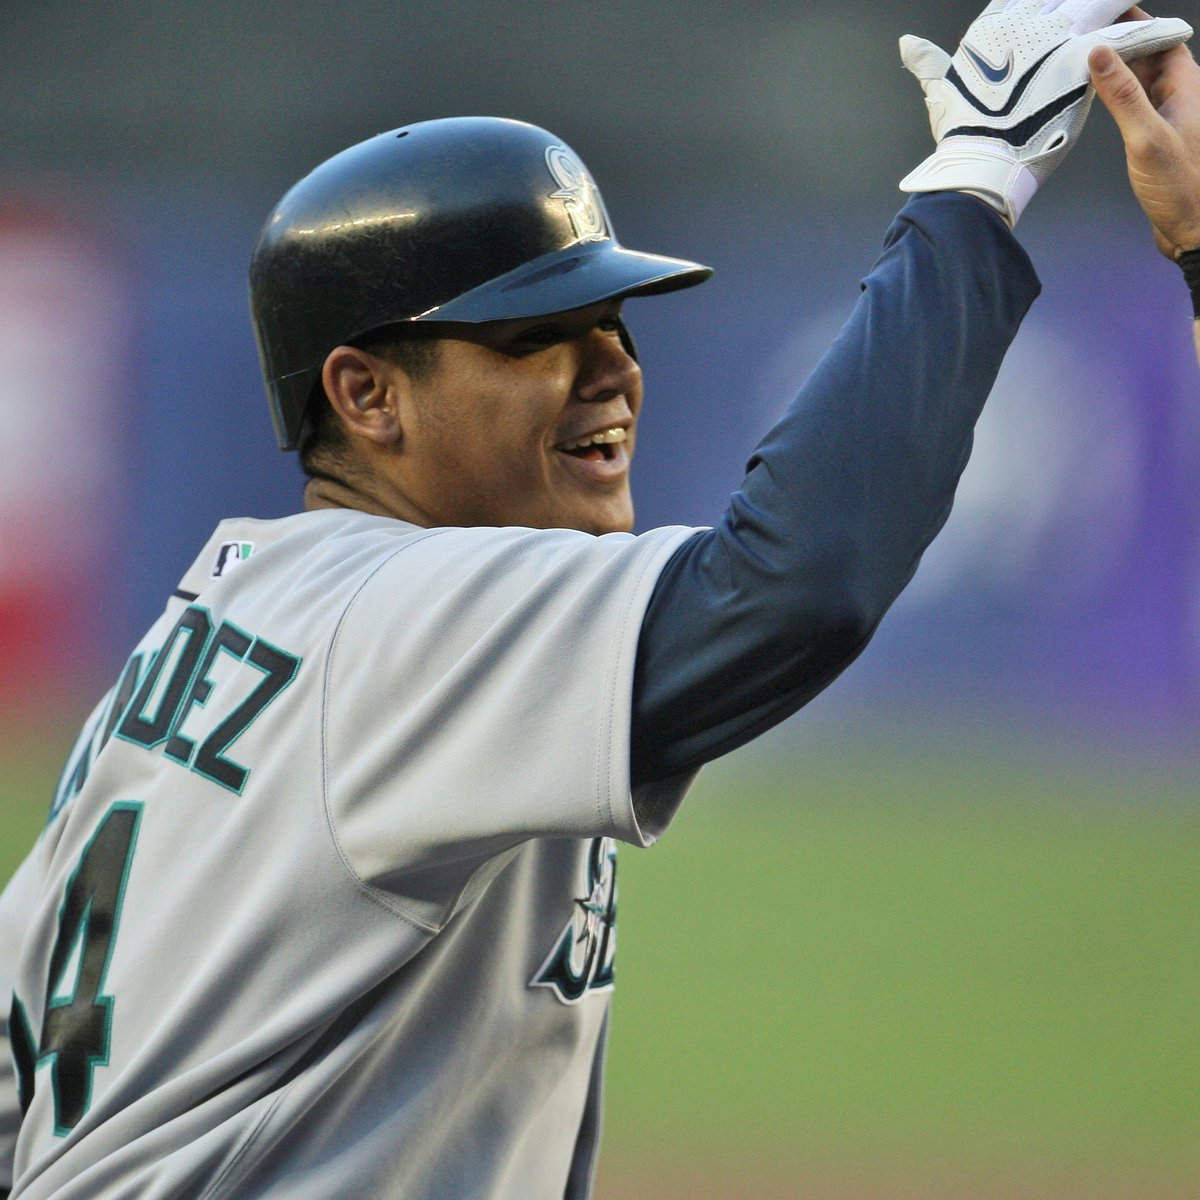 It's King Félix's birthday so let's take a look back at the time he hit a grand slam off Johan Santana.